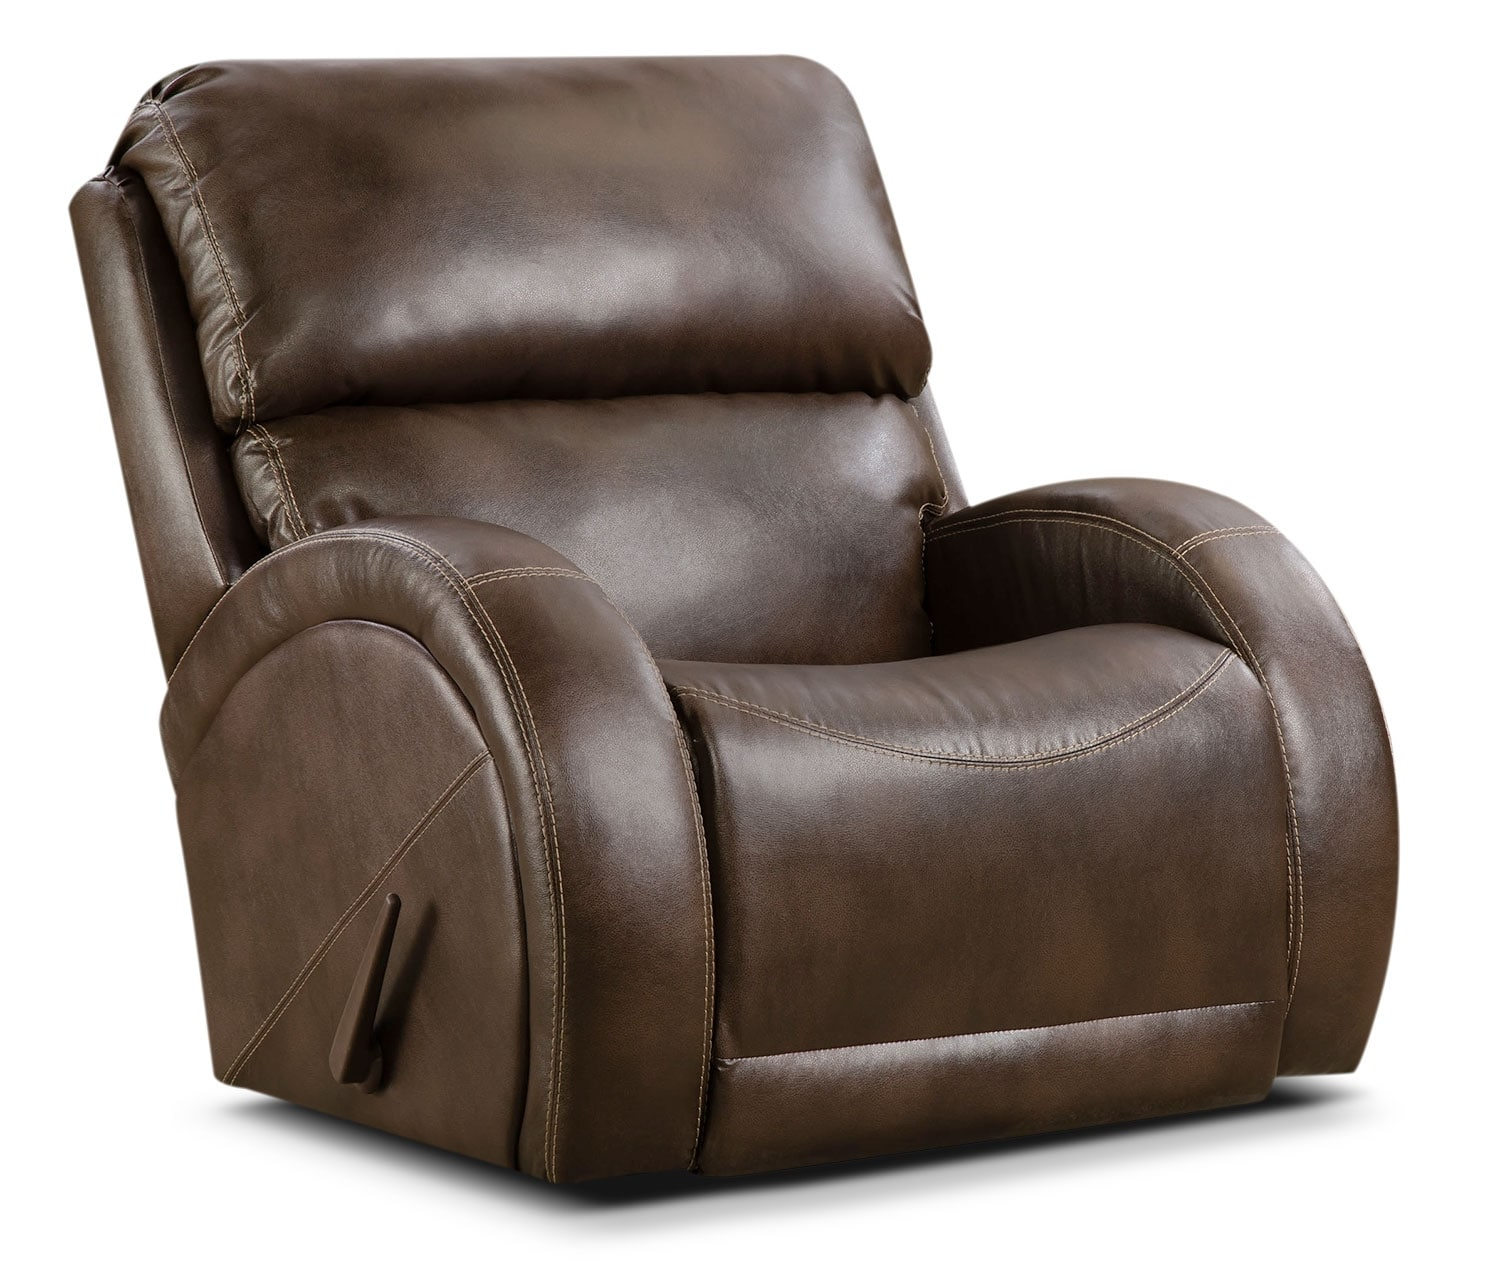 [Bentley Recliner]